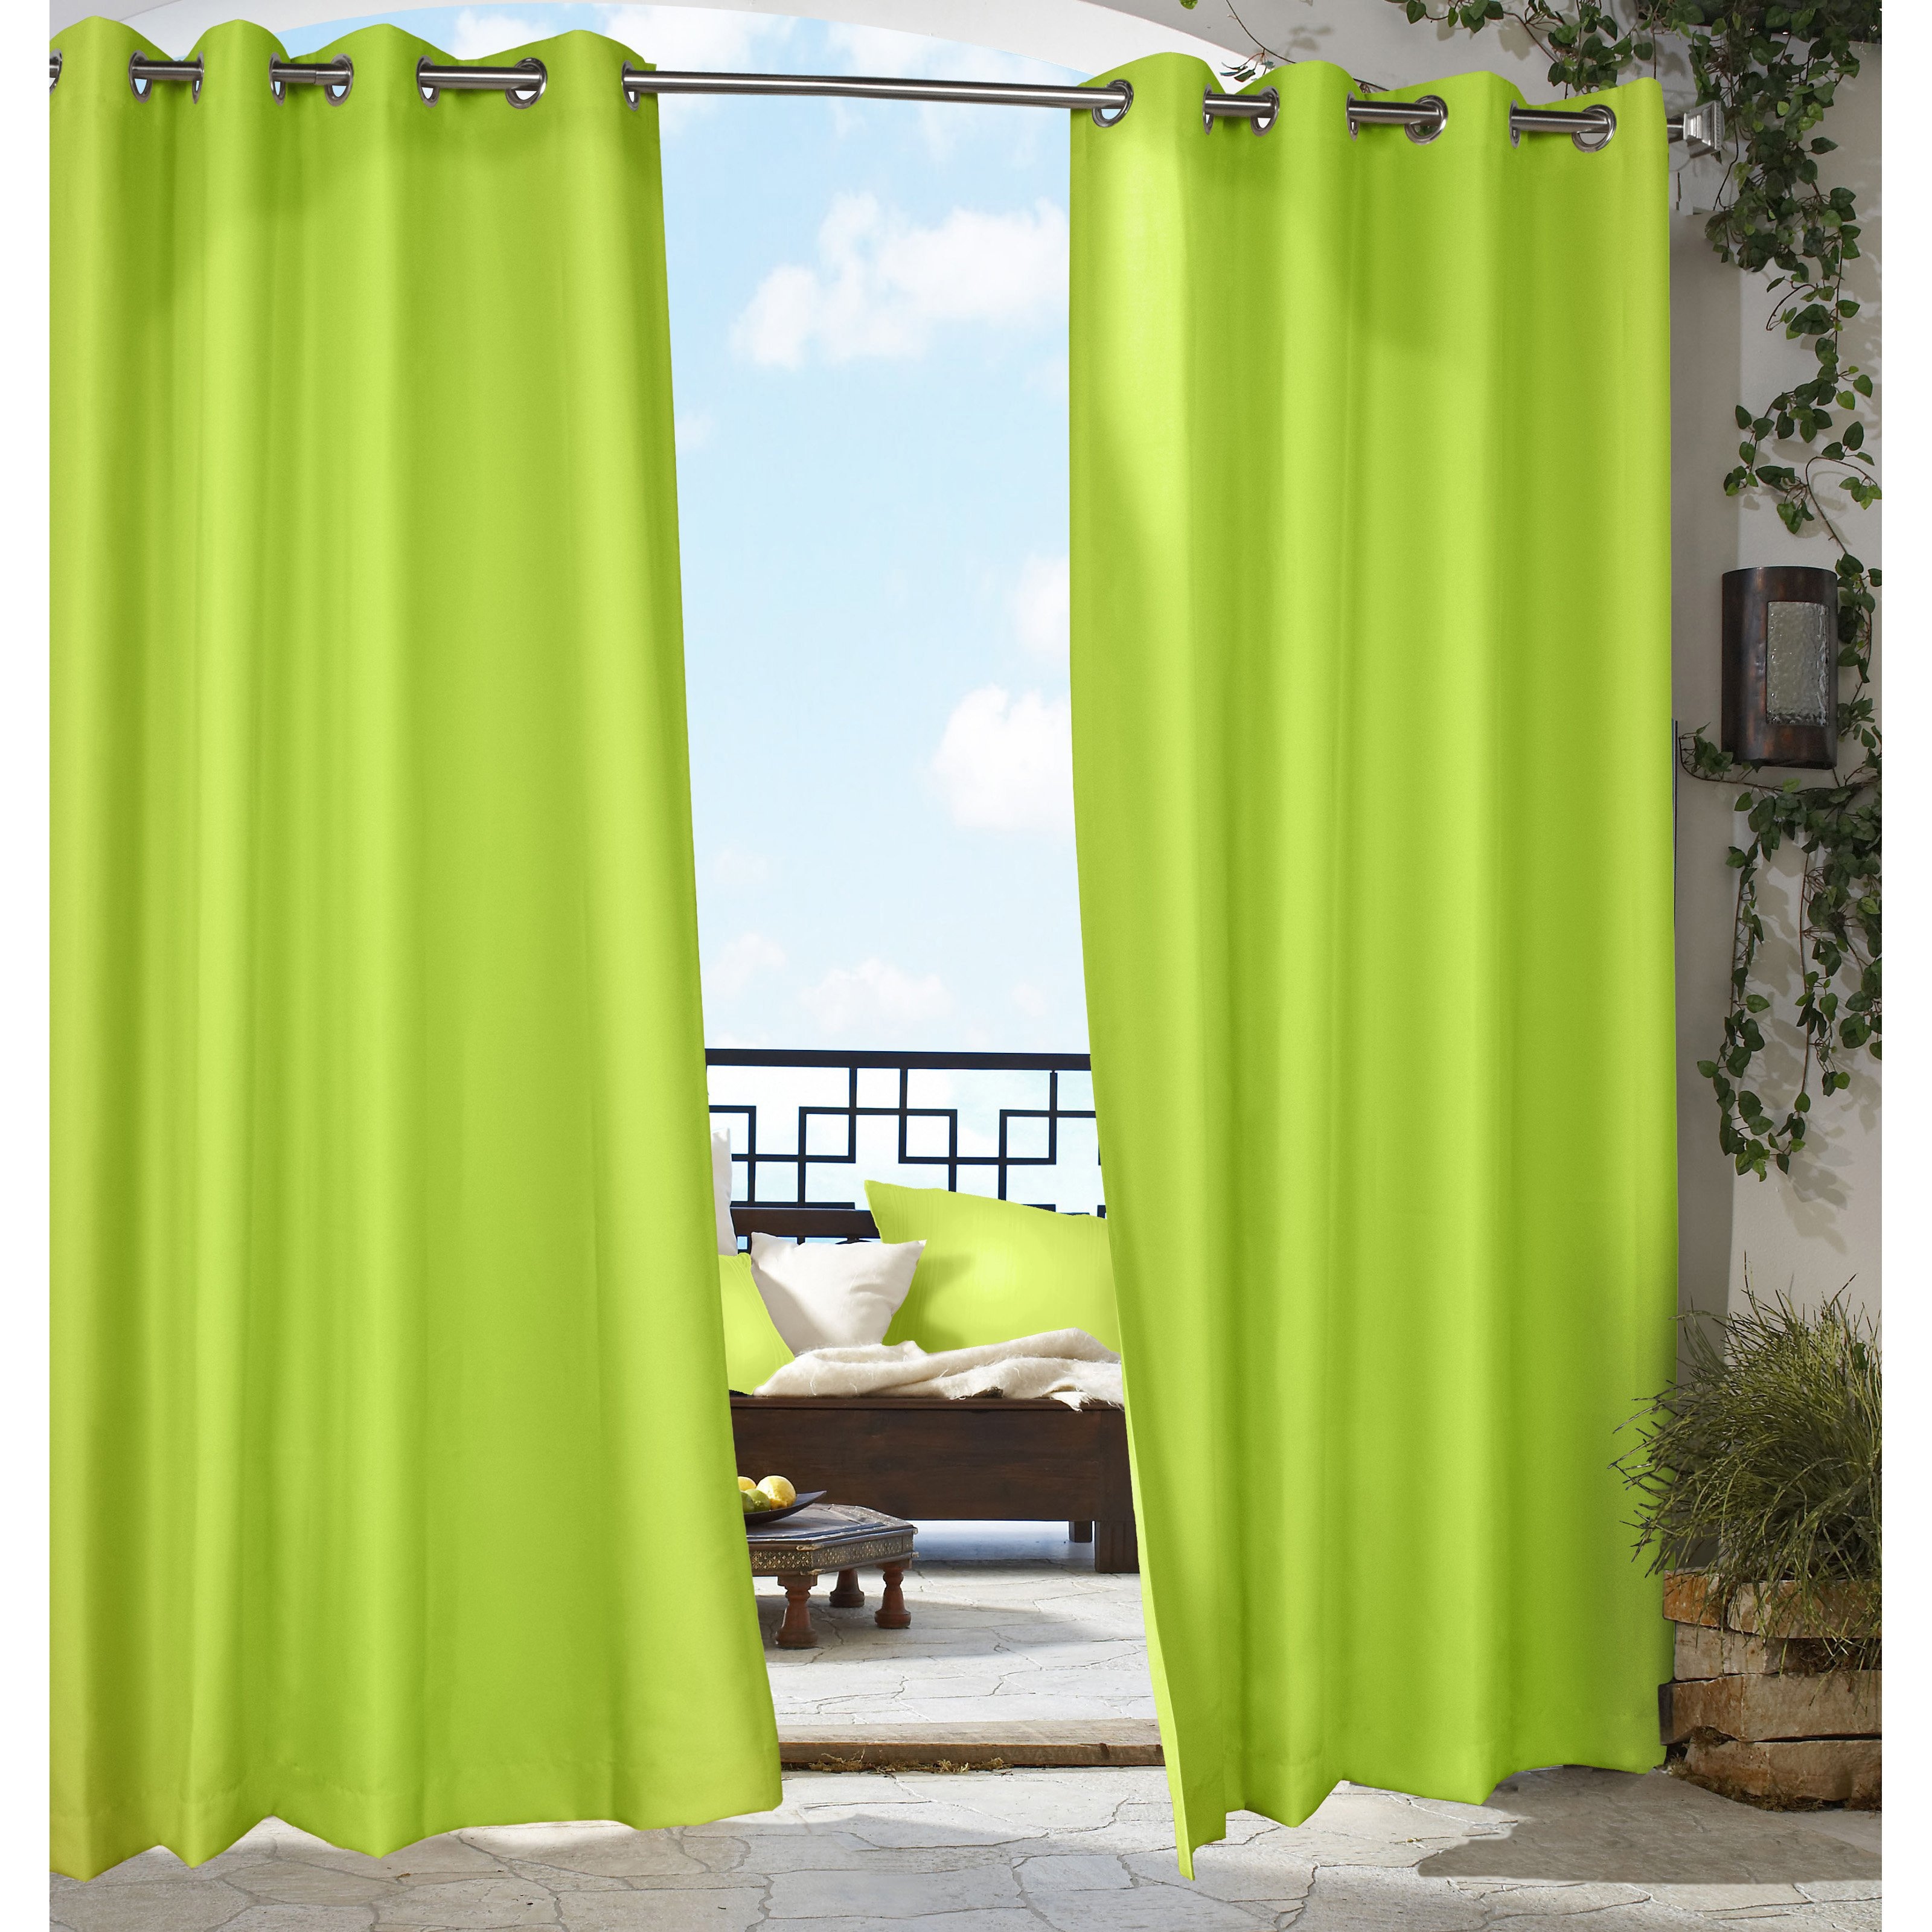 patio new size shadesbamboo stupendous full cheap roll curtains panels ideas curtain outdoor tie picture for up bamboo of